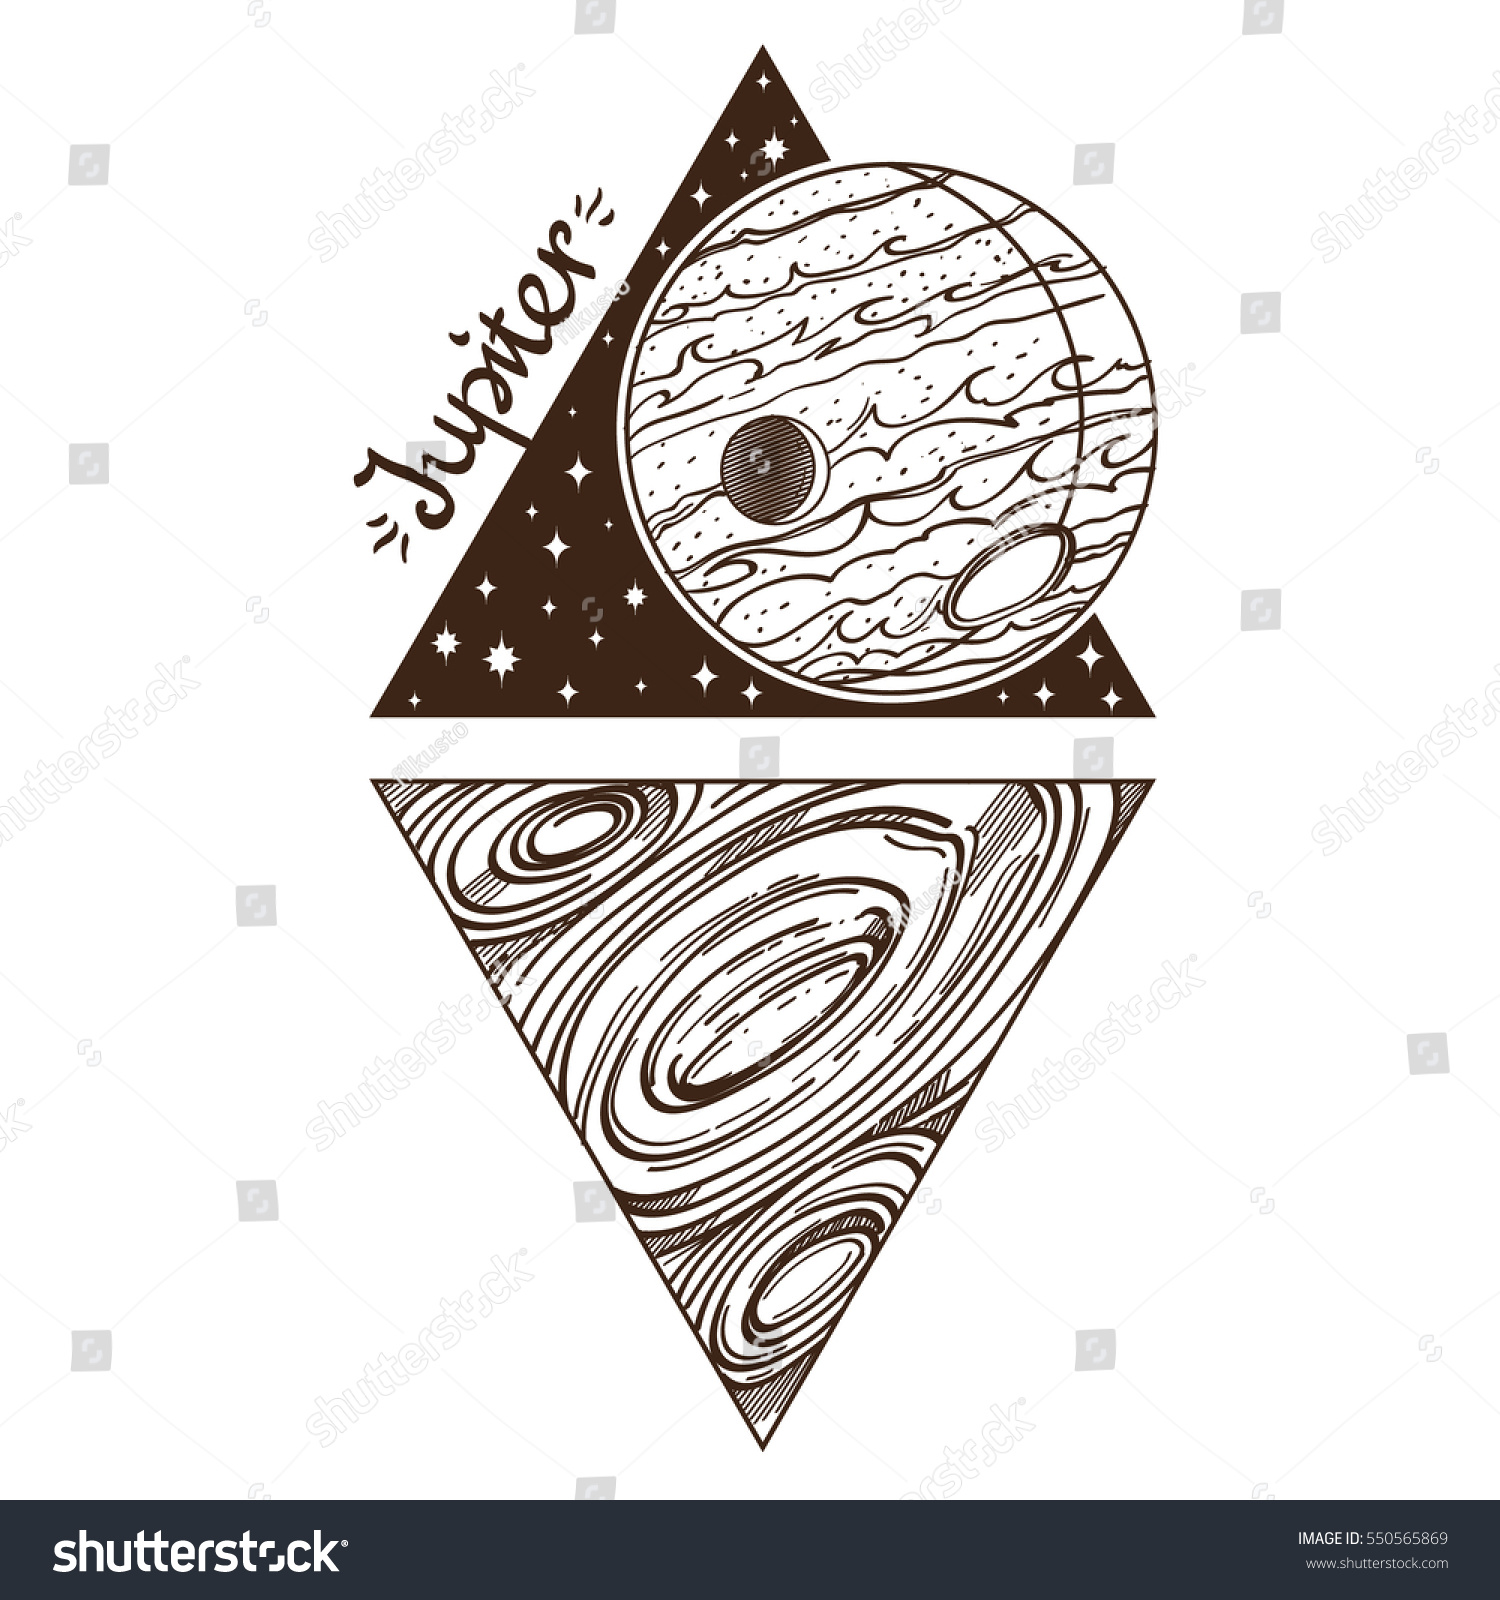 Jupiter planets stars solar system symbols stock vector 550565869 planets and stars of solar system symbols for astronomy and astrology coloring buycottarizona